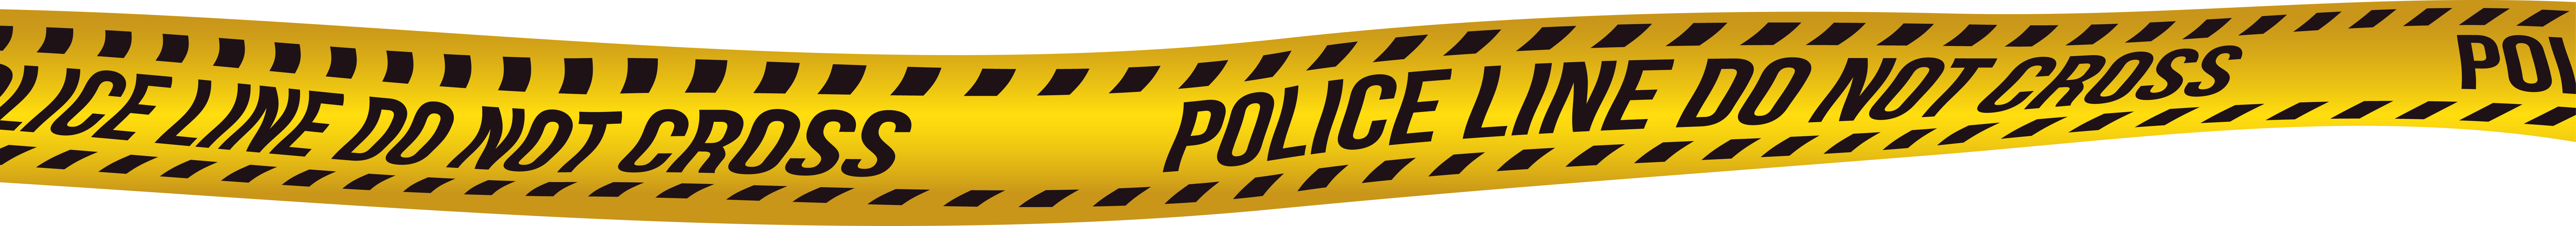 Grab and download Police Tape Transparent PNG File